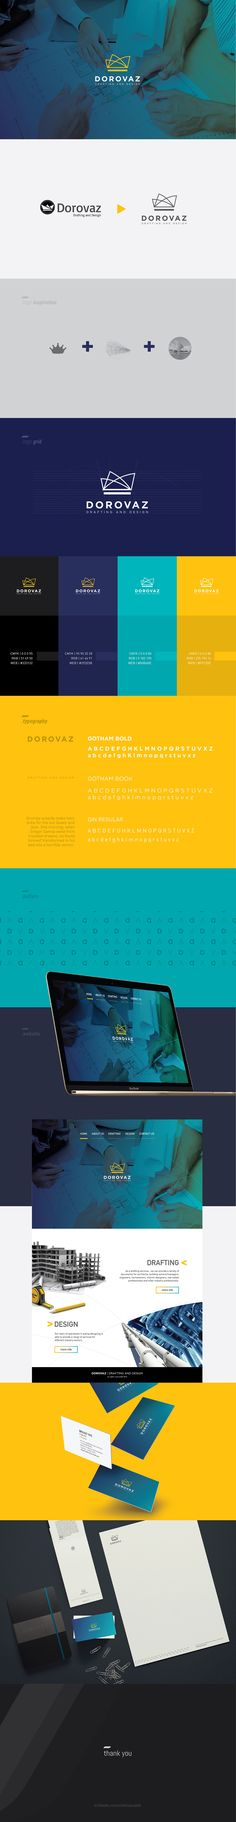 Branding and visual identity for Dorovaz Drafting and Design | Engineering company in Sidney